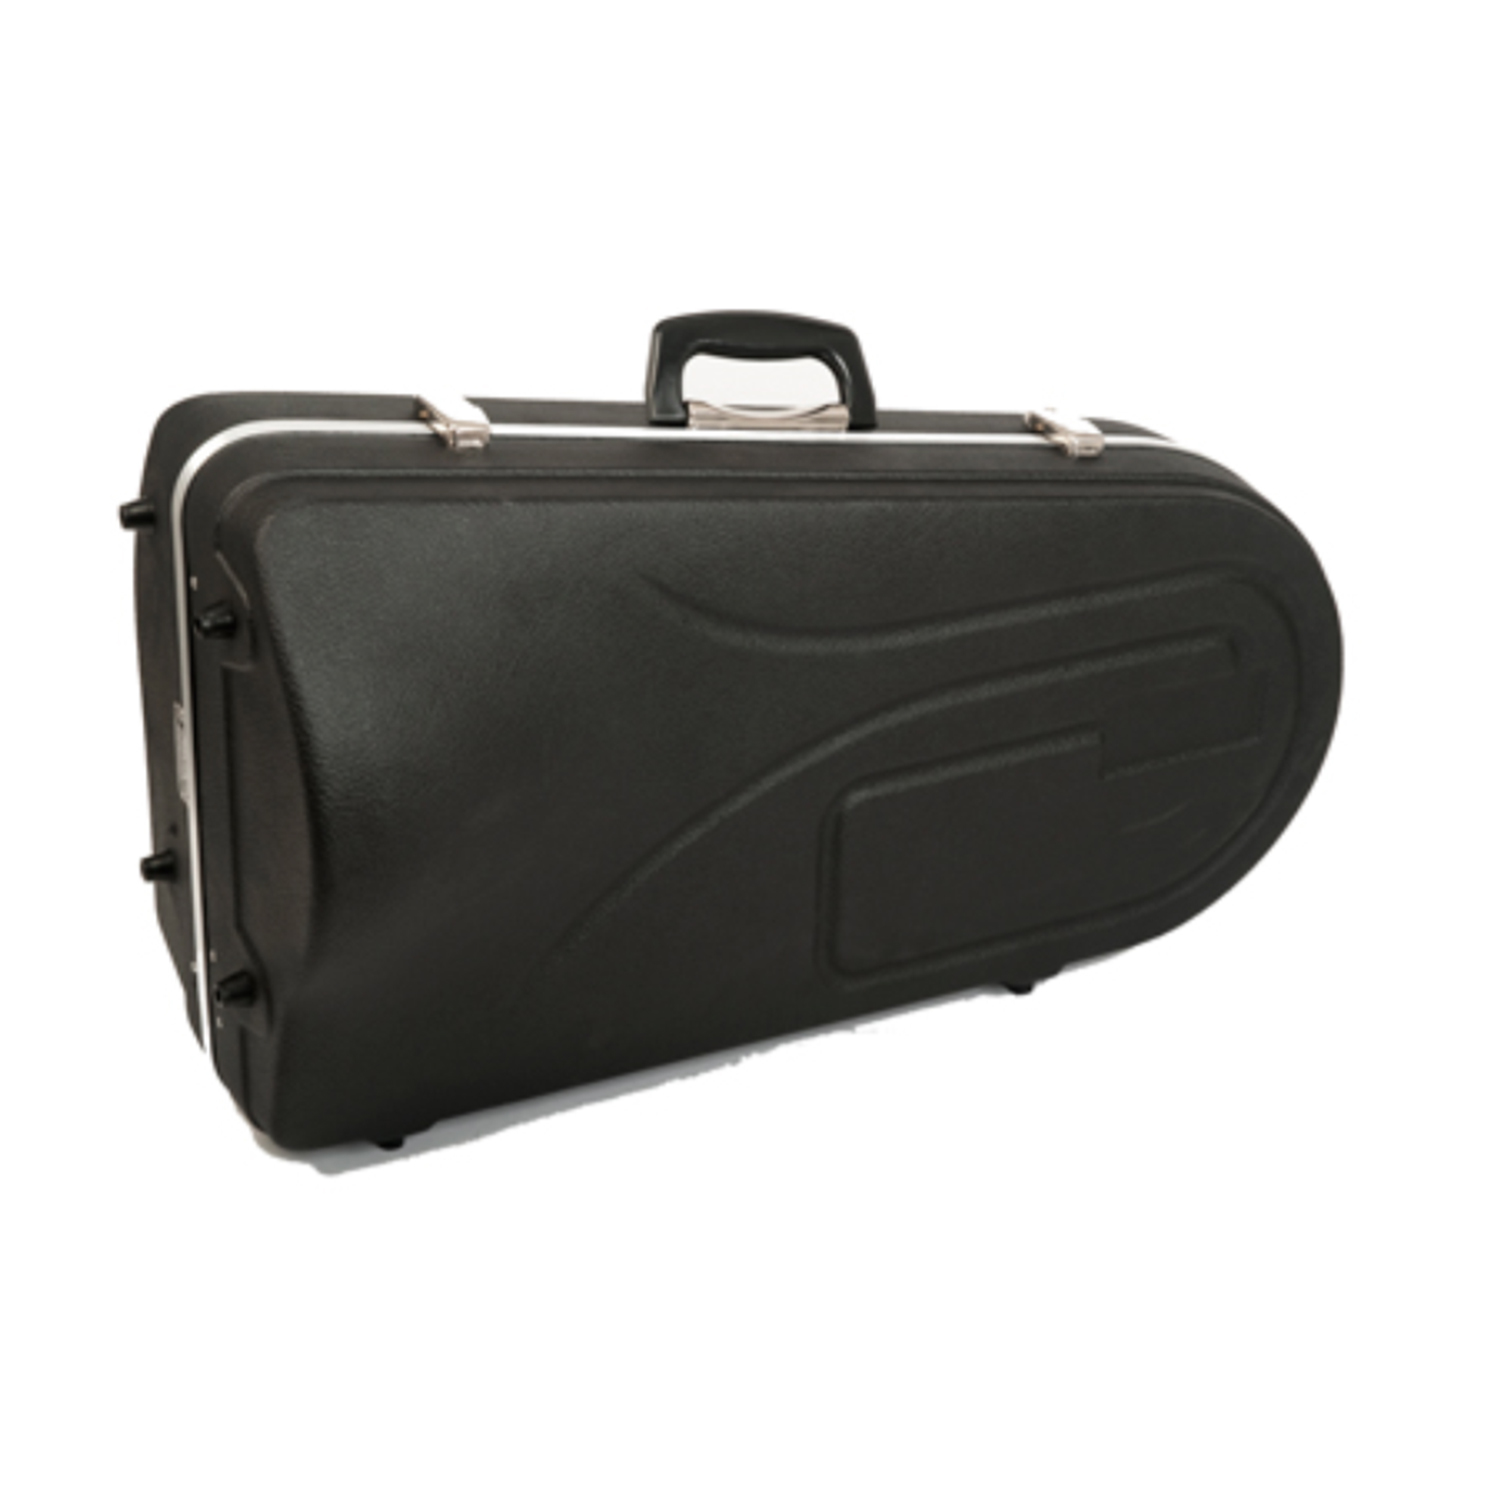 Hiscox Baritone Horn Case - Black Exterior with Blue Interior